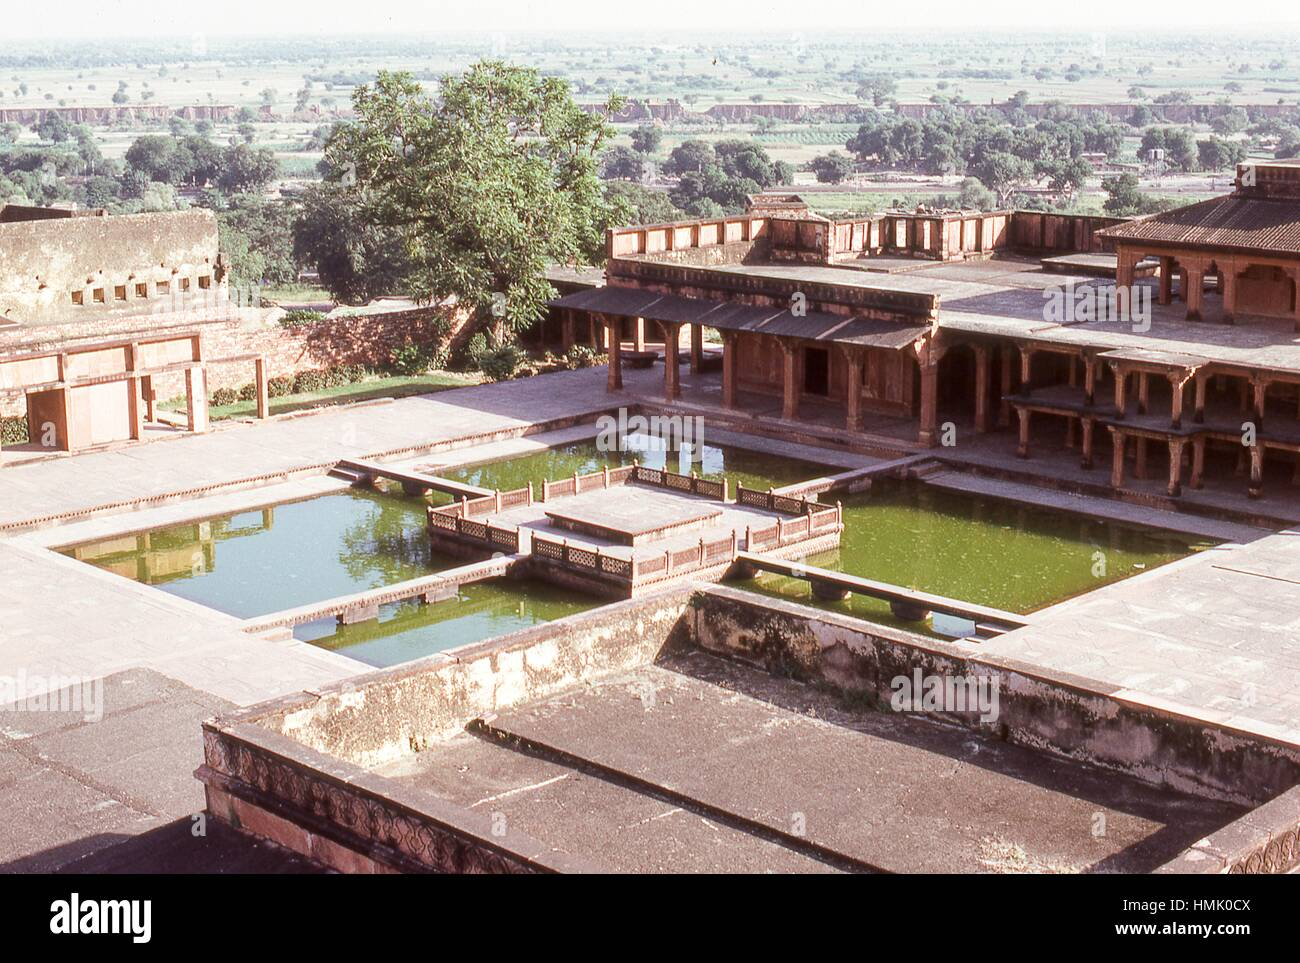 View of the Anup Talao ornamental pools from atop the Panch Mahal palace, inside the royal enclave of Fatehpur Sikri, - Stock Image